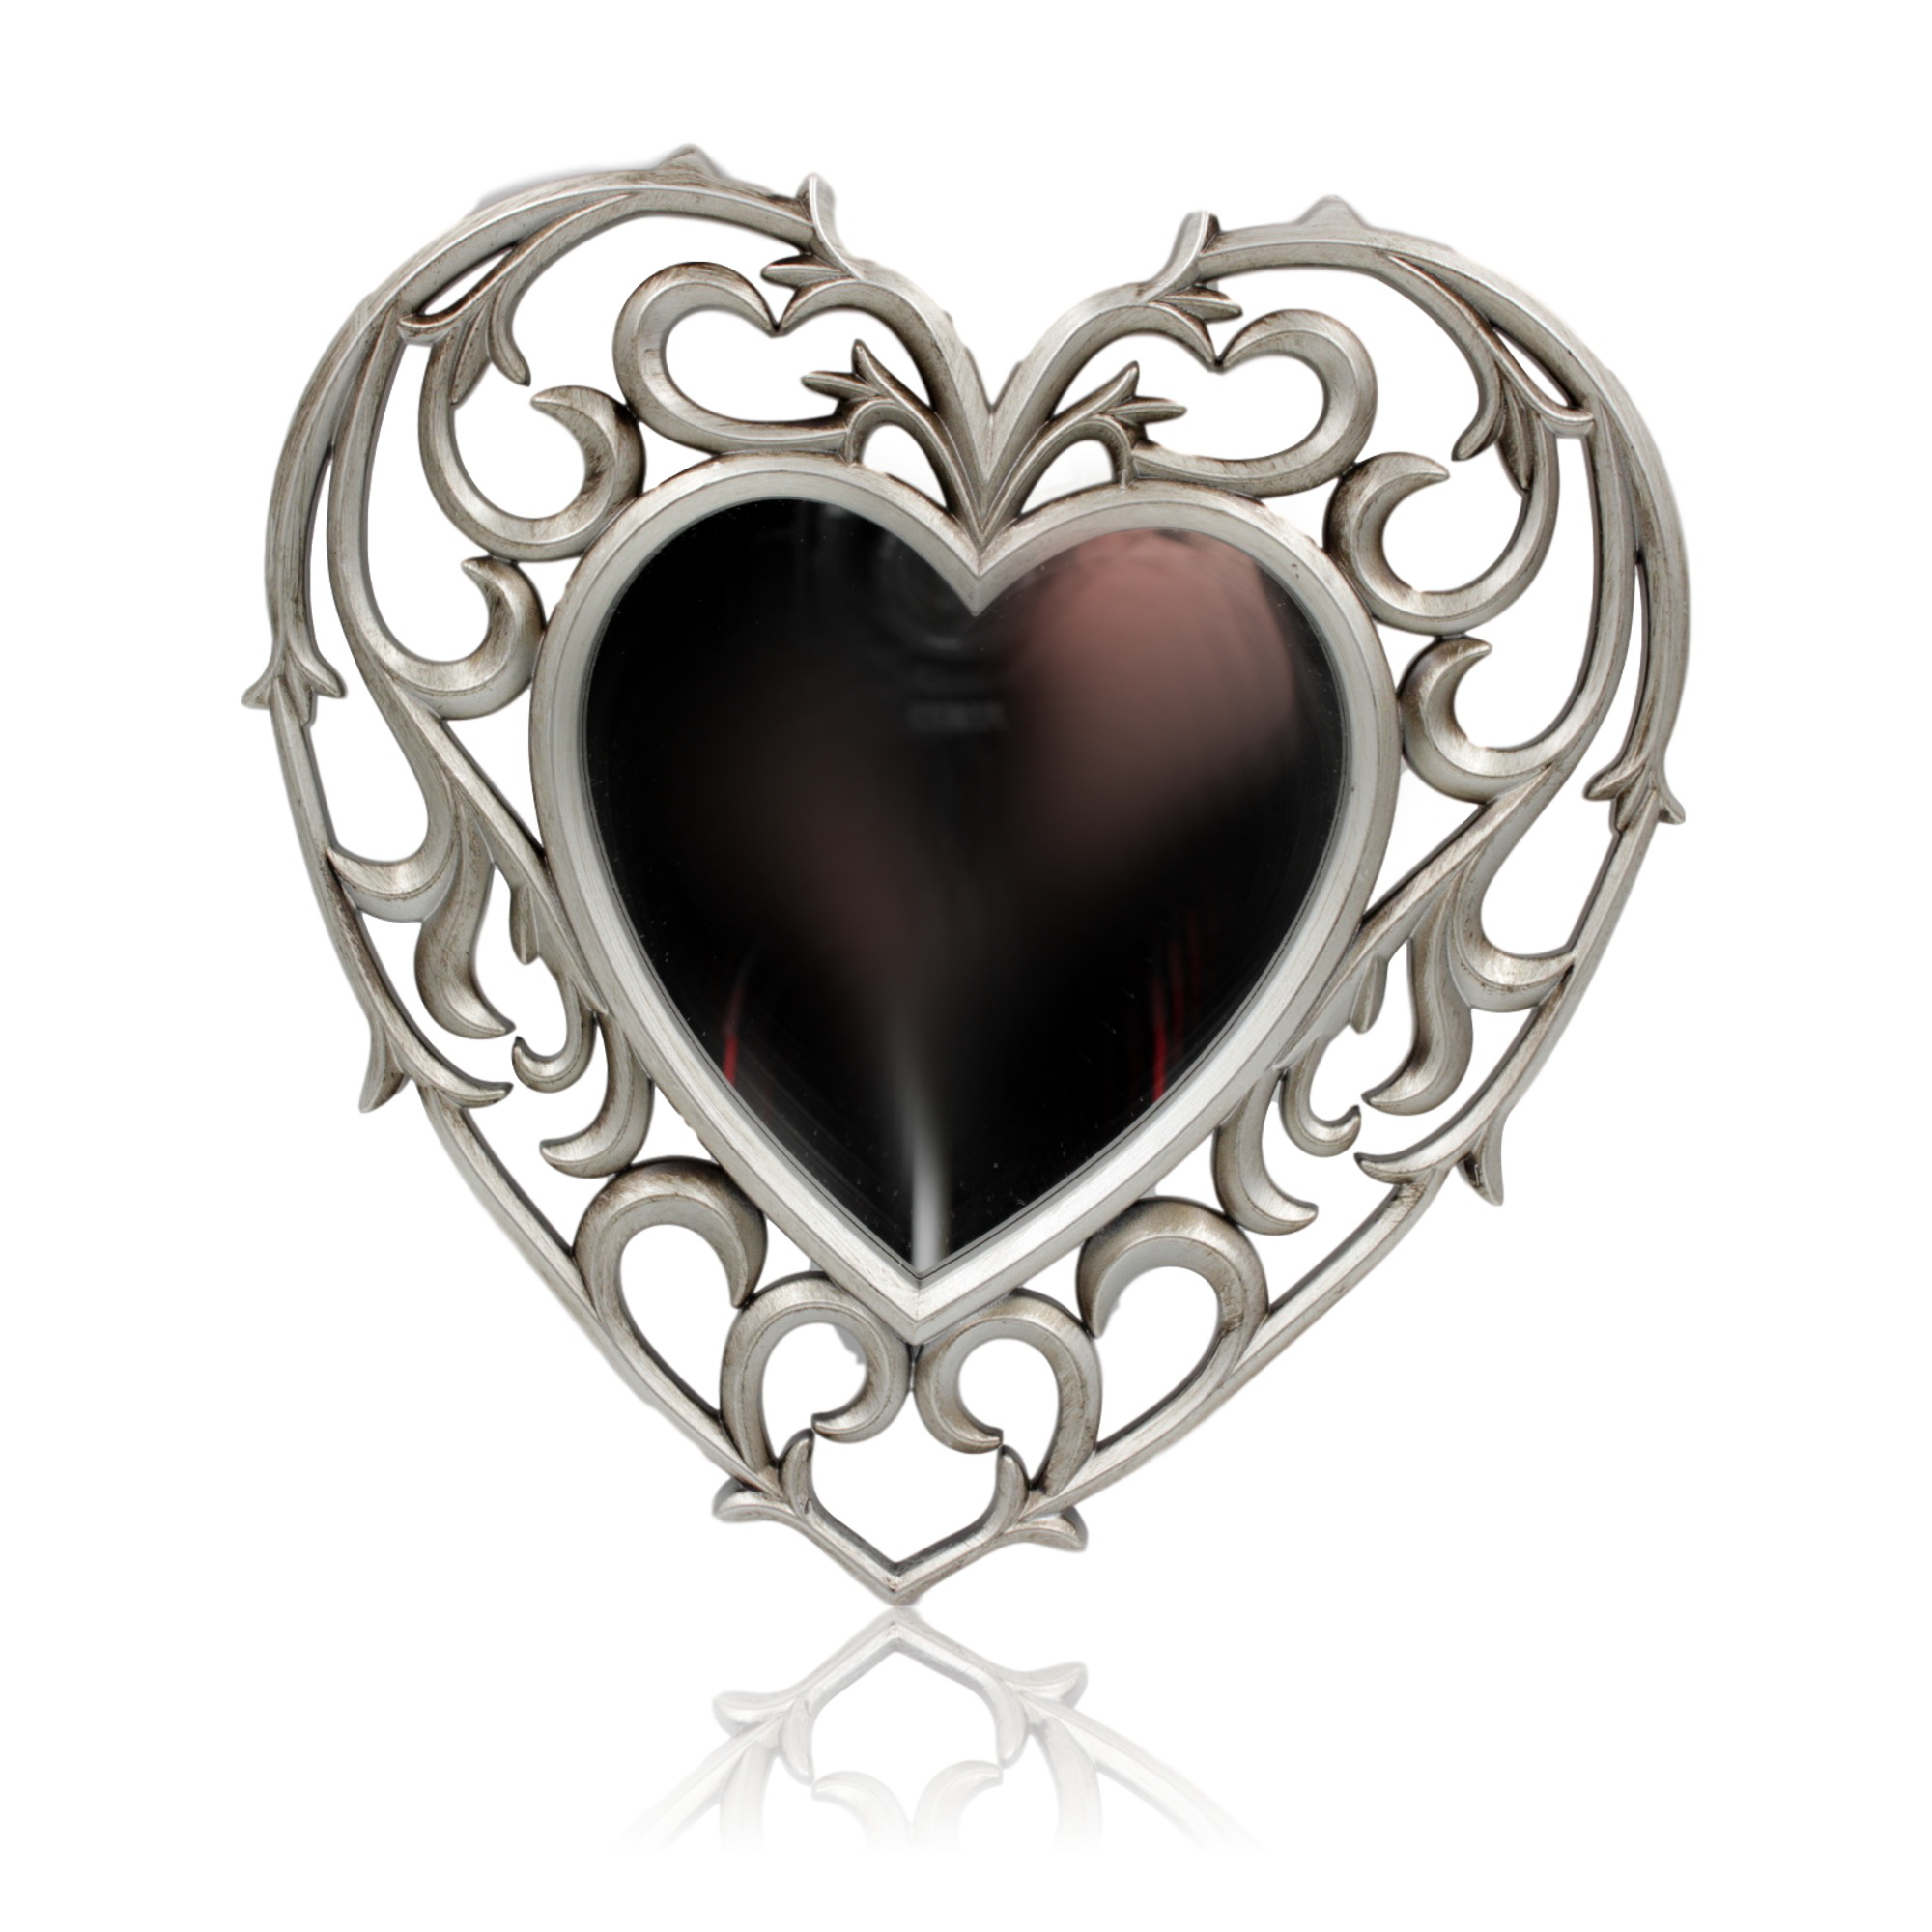 1x Small Heart Shaped Mirror Plastic Antique Silver Frame 25cm x ...